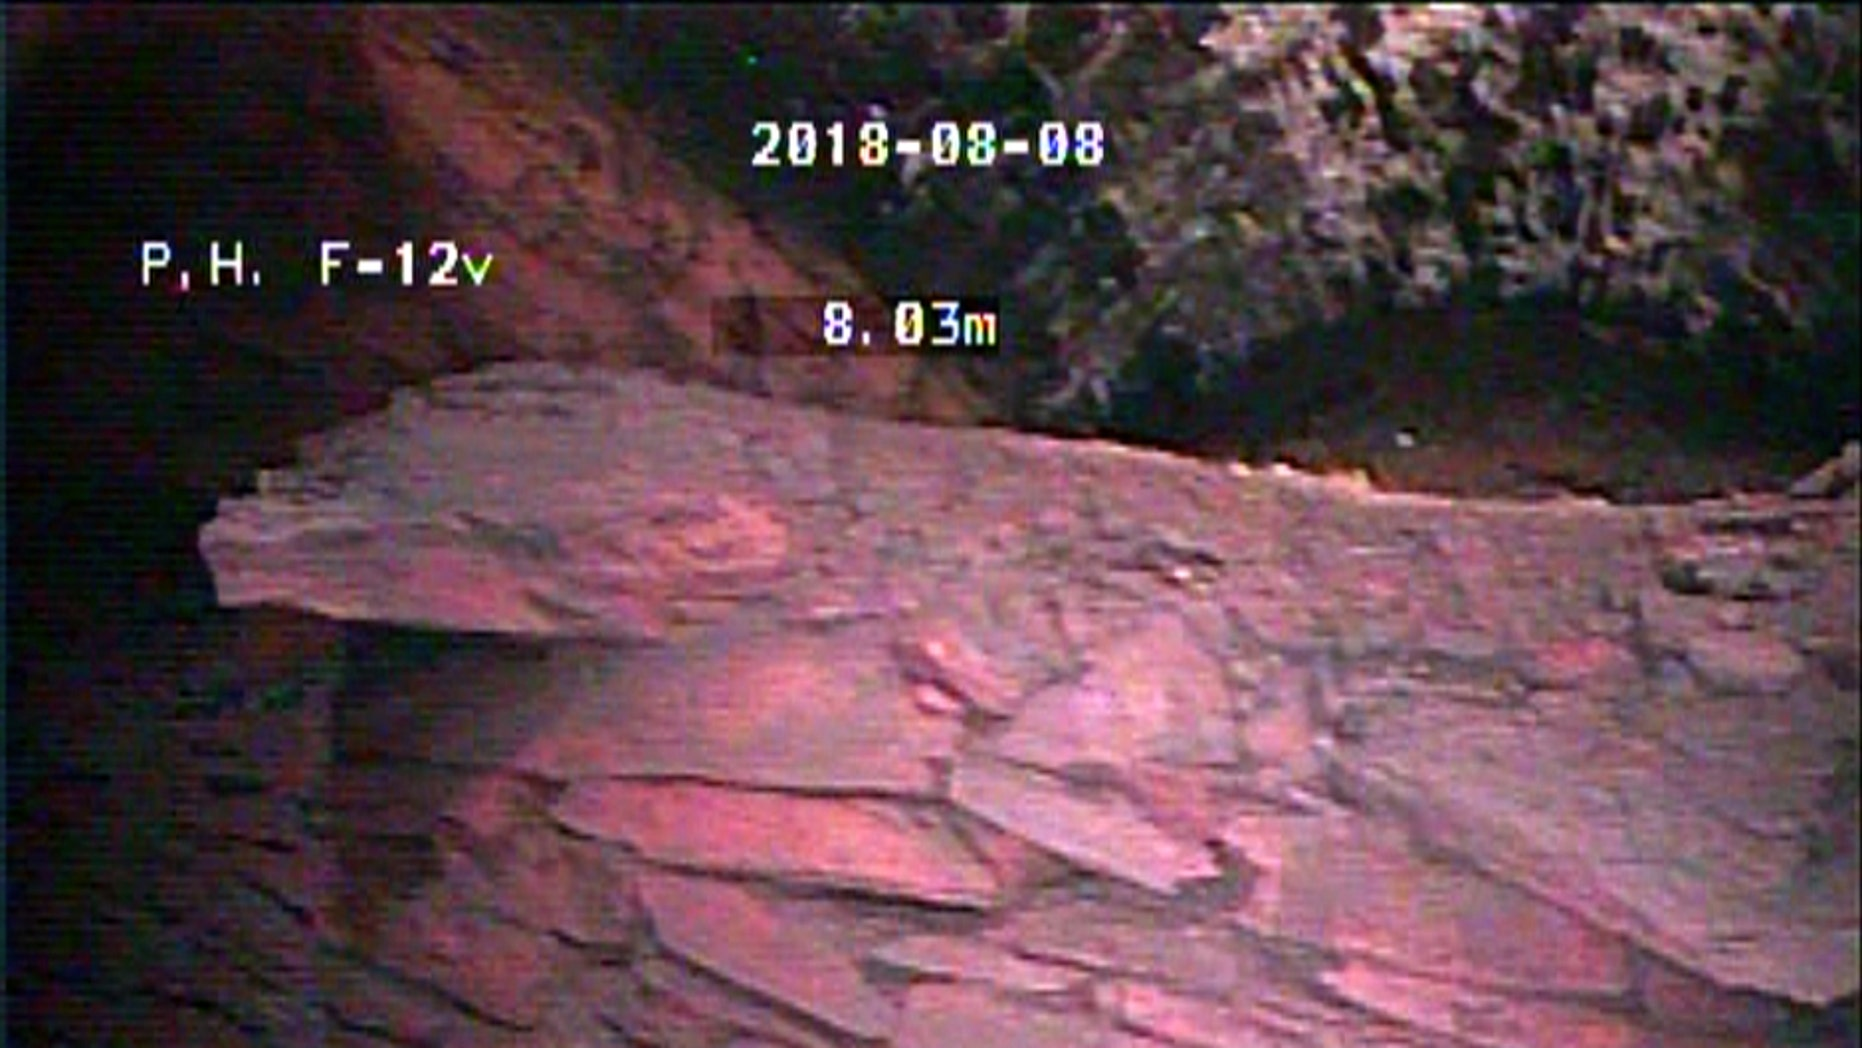 A remote camera seen from the south side of the mysterious underground chamber. (Province of Nova Scotia)